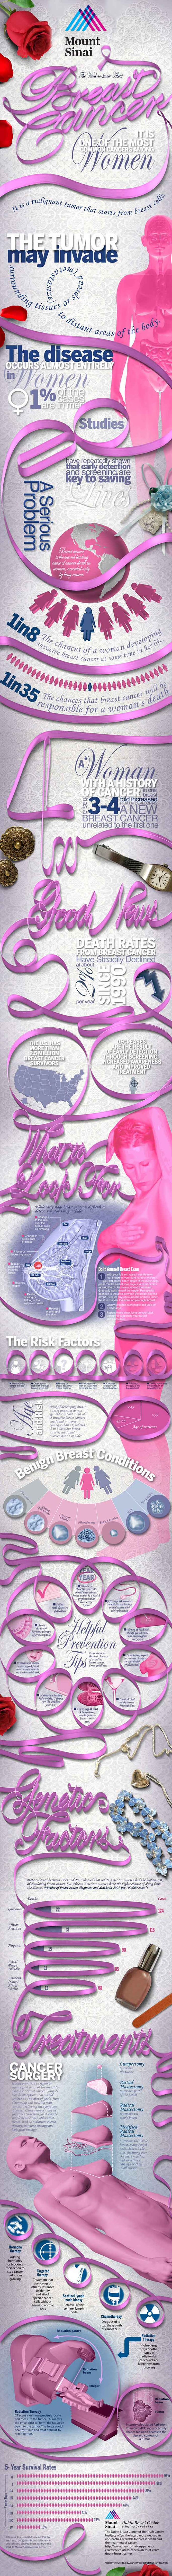 Facts About Breast Cancer | Mount Sinai - New York